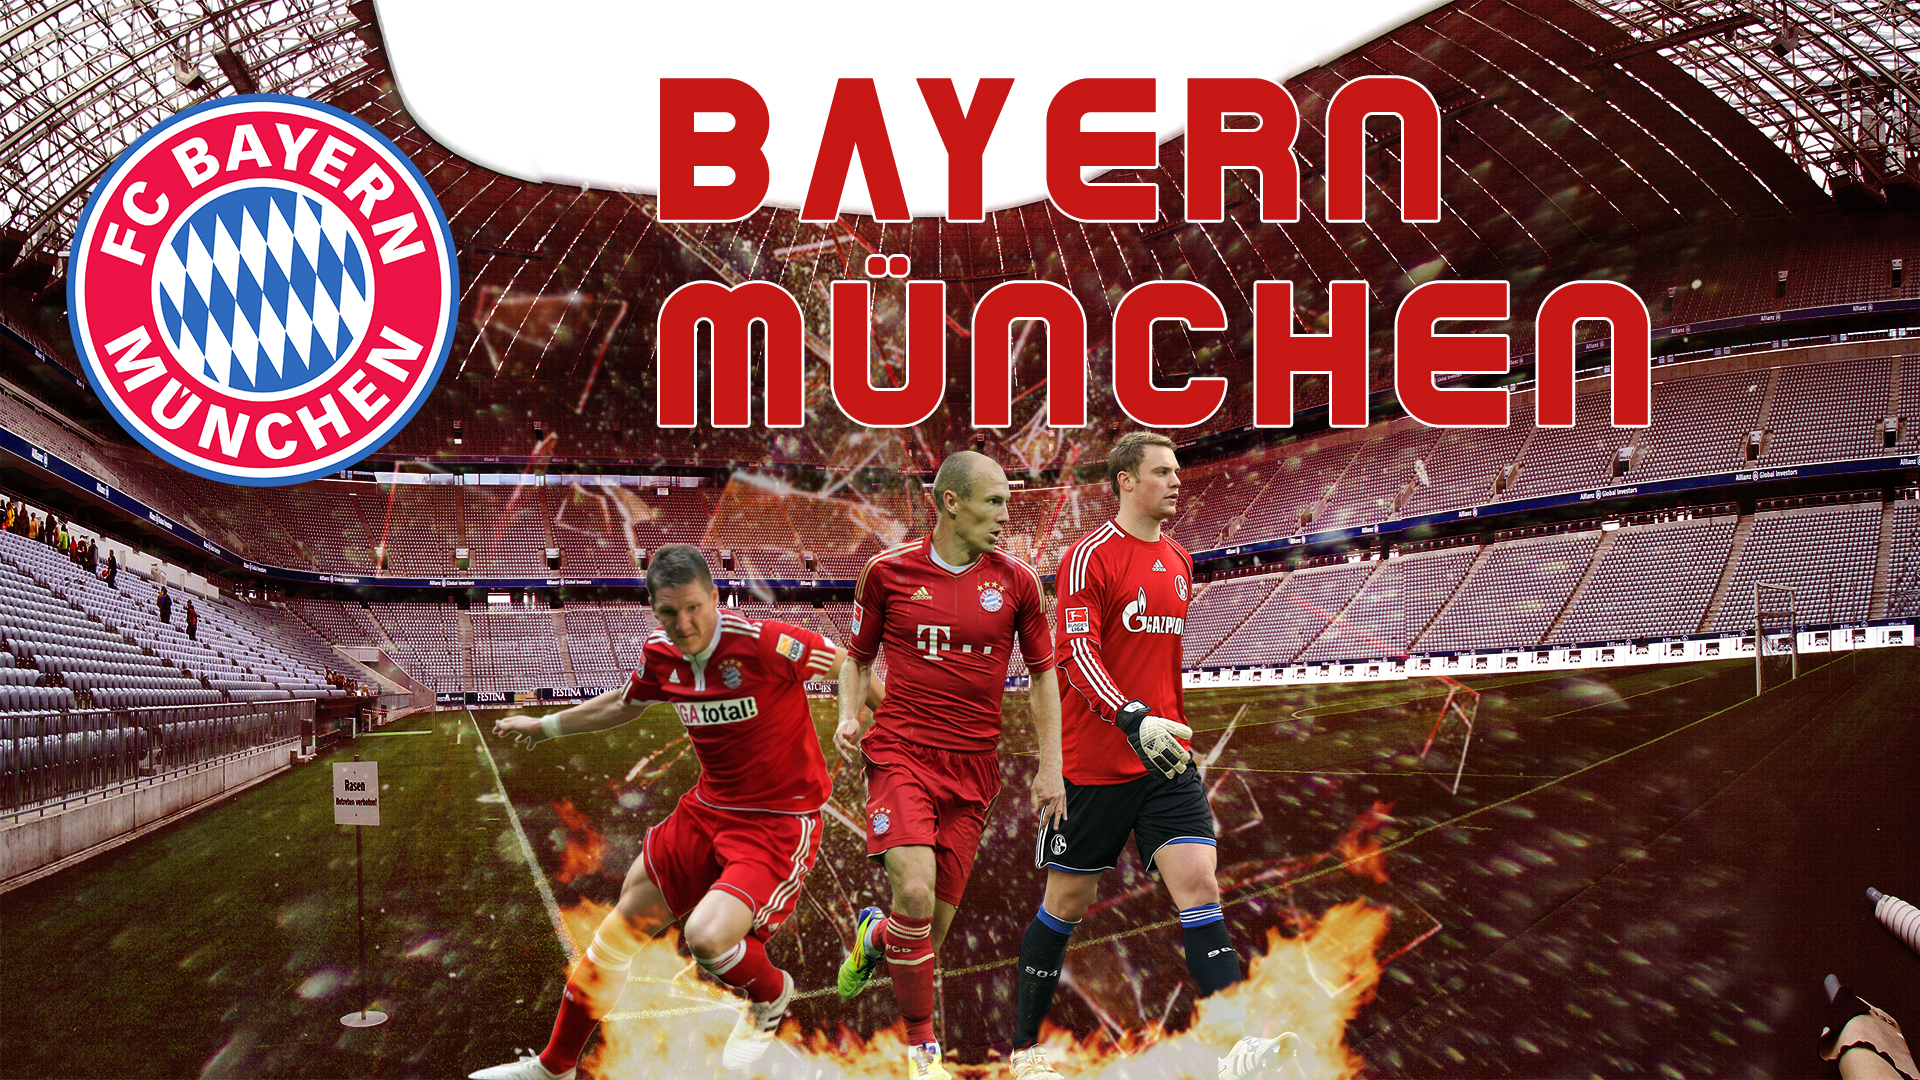 Cars So Cool Wallpaper For Computer Bayern Munich Wallpapers Free 1080p 12357 Wallpaper